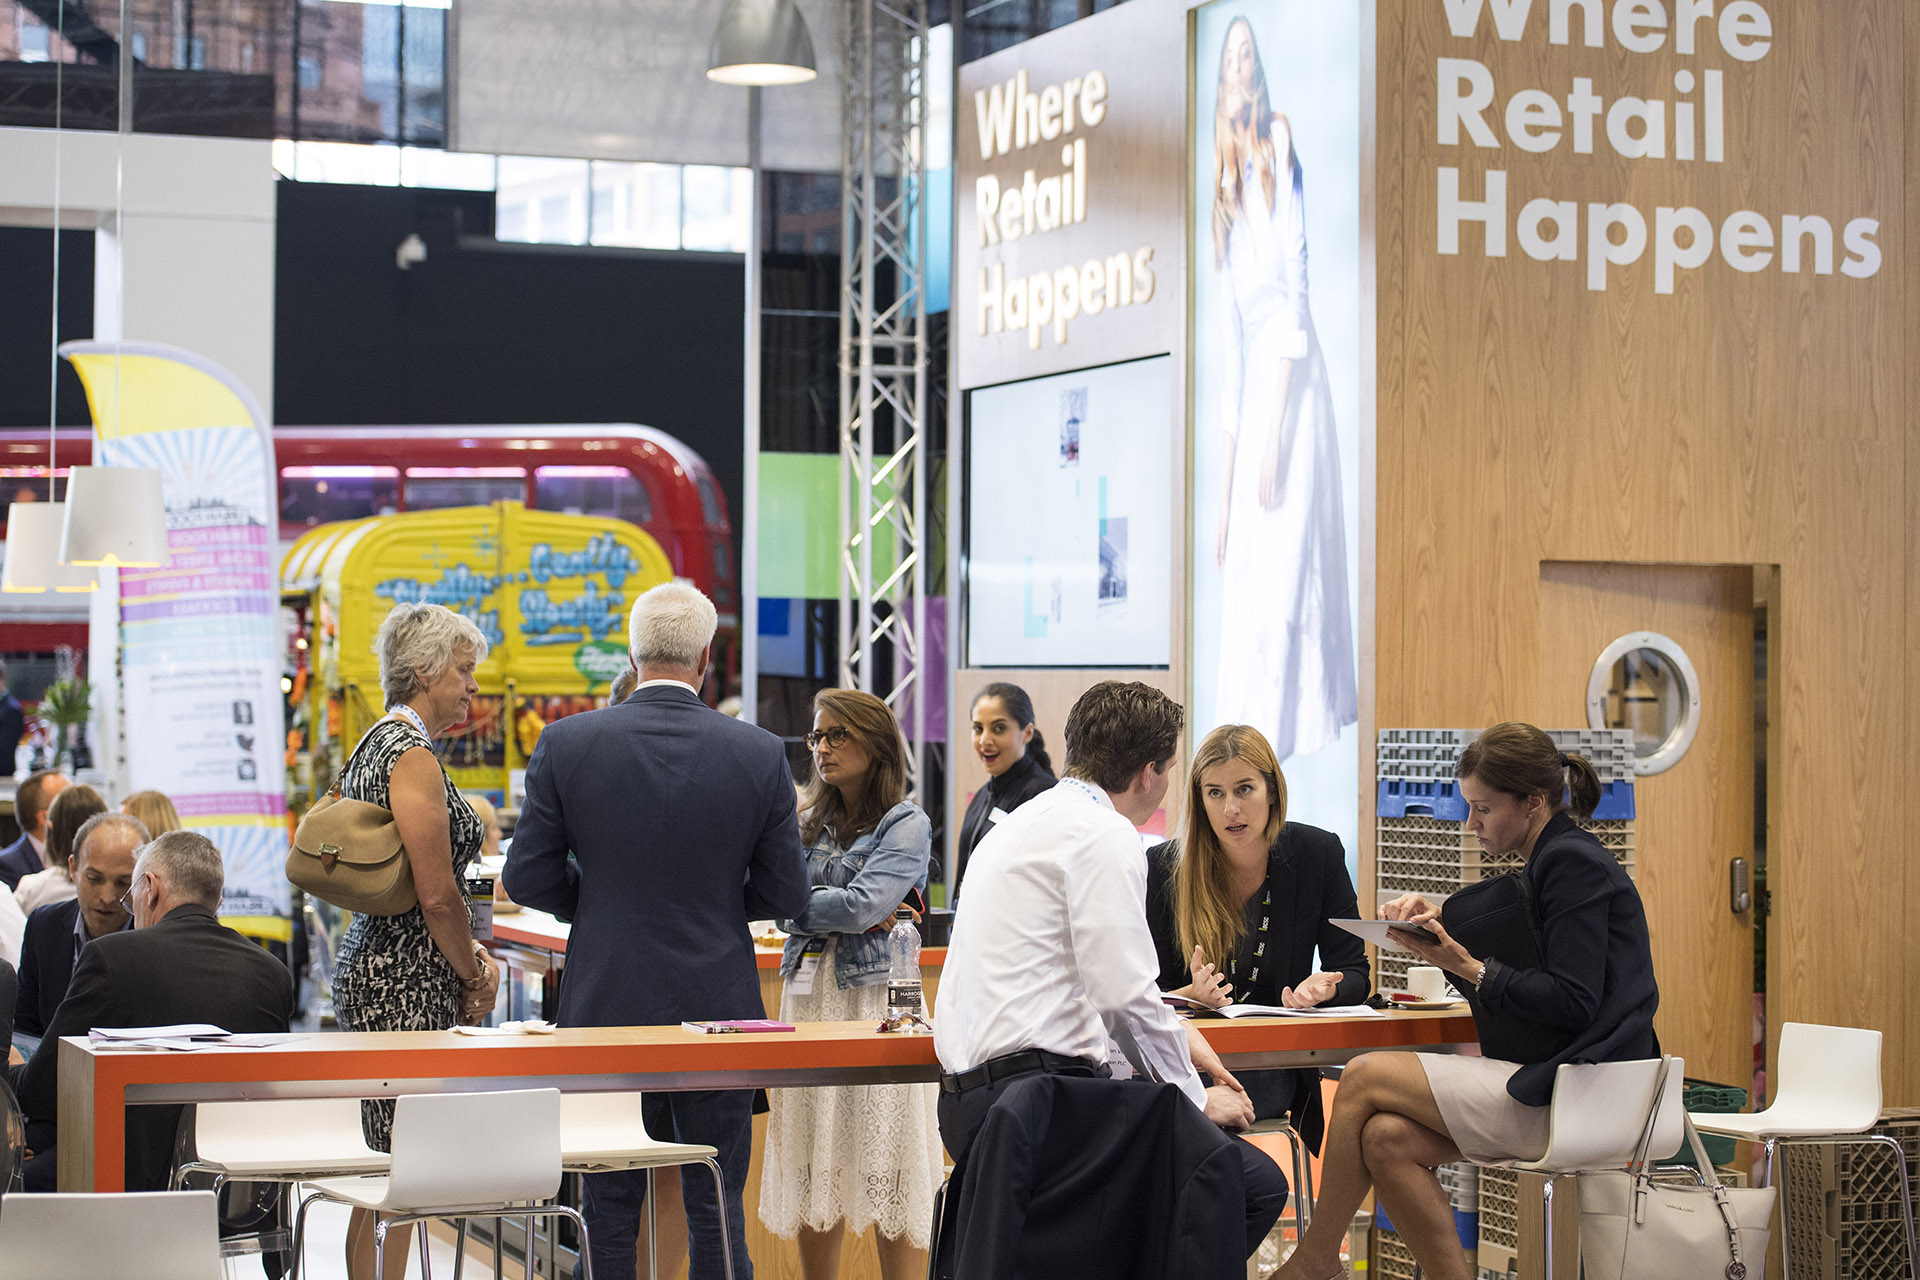 Photograph from British Retail Consortium conference & exhibition at Manchester Central. Conference photography Jon Parker Lee Manchester throughout UK